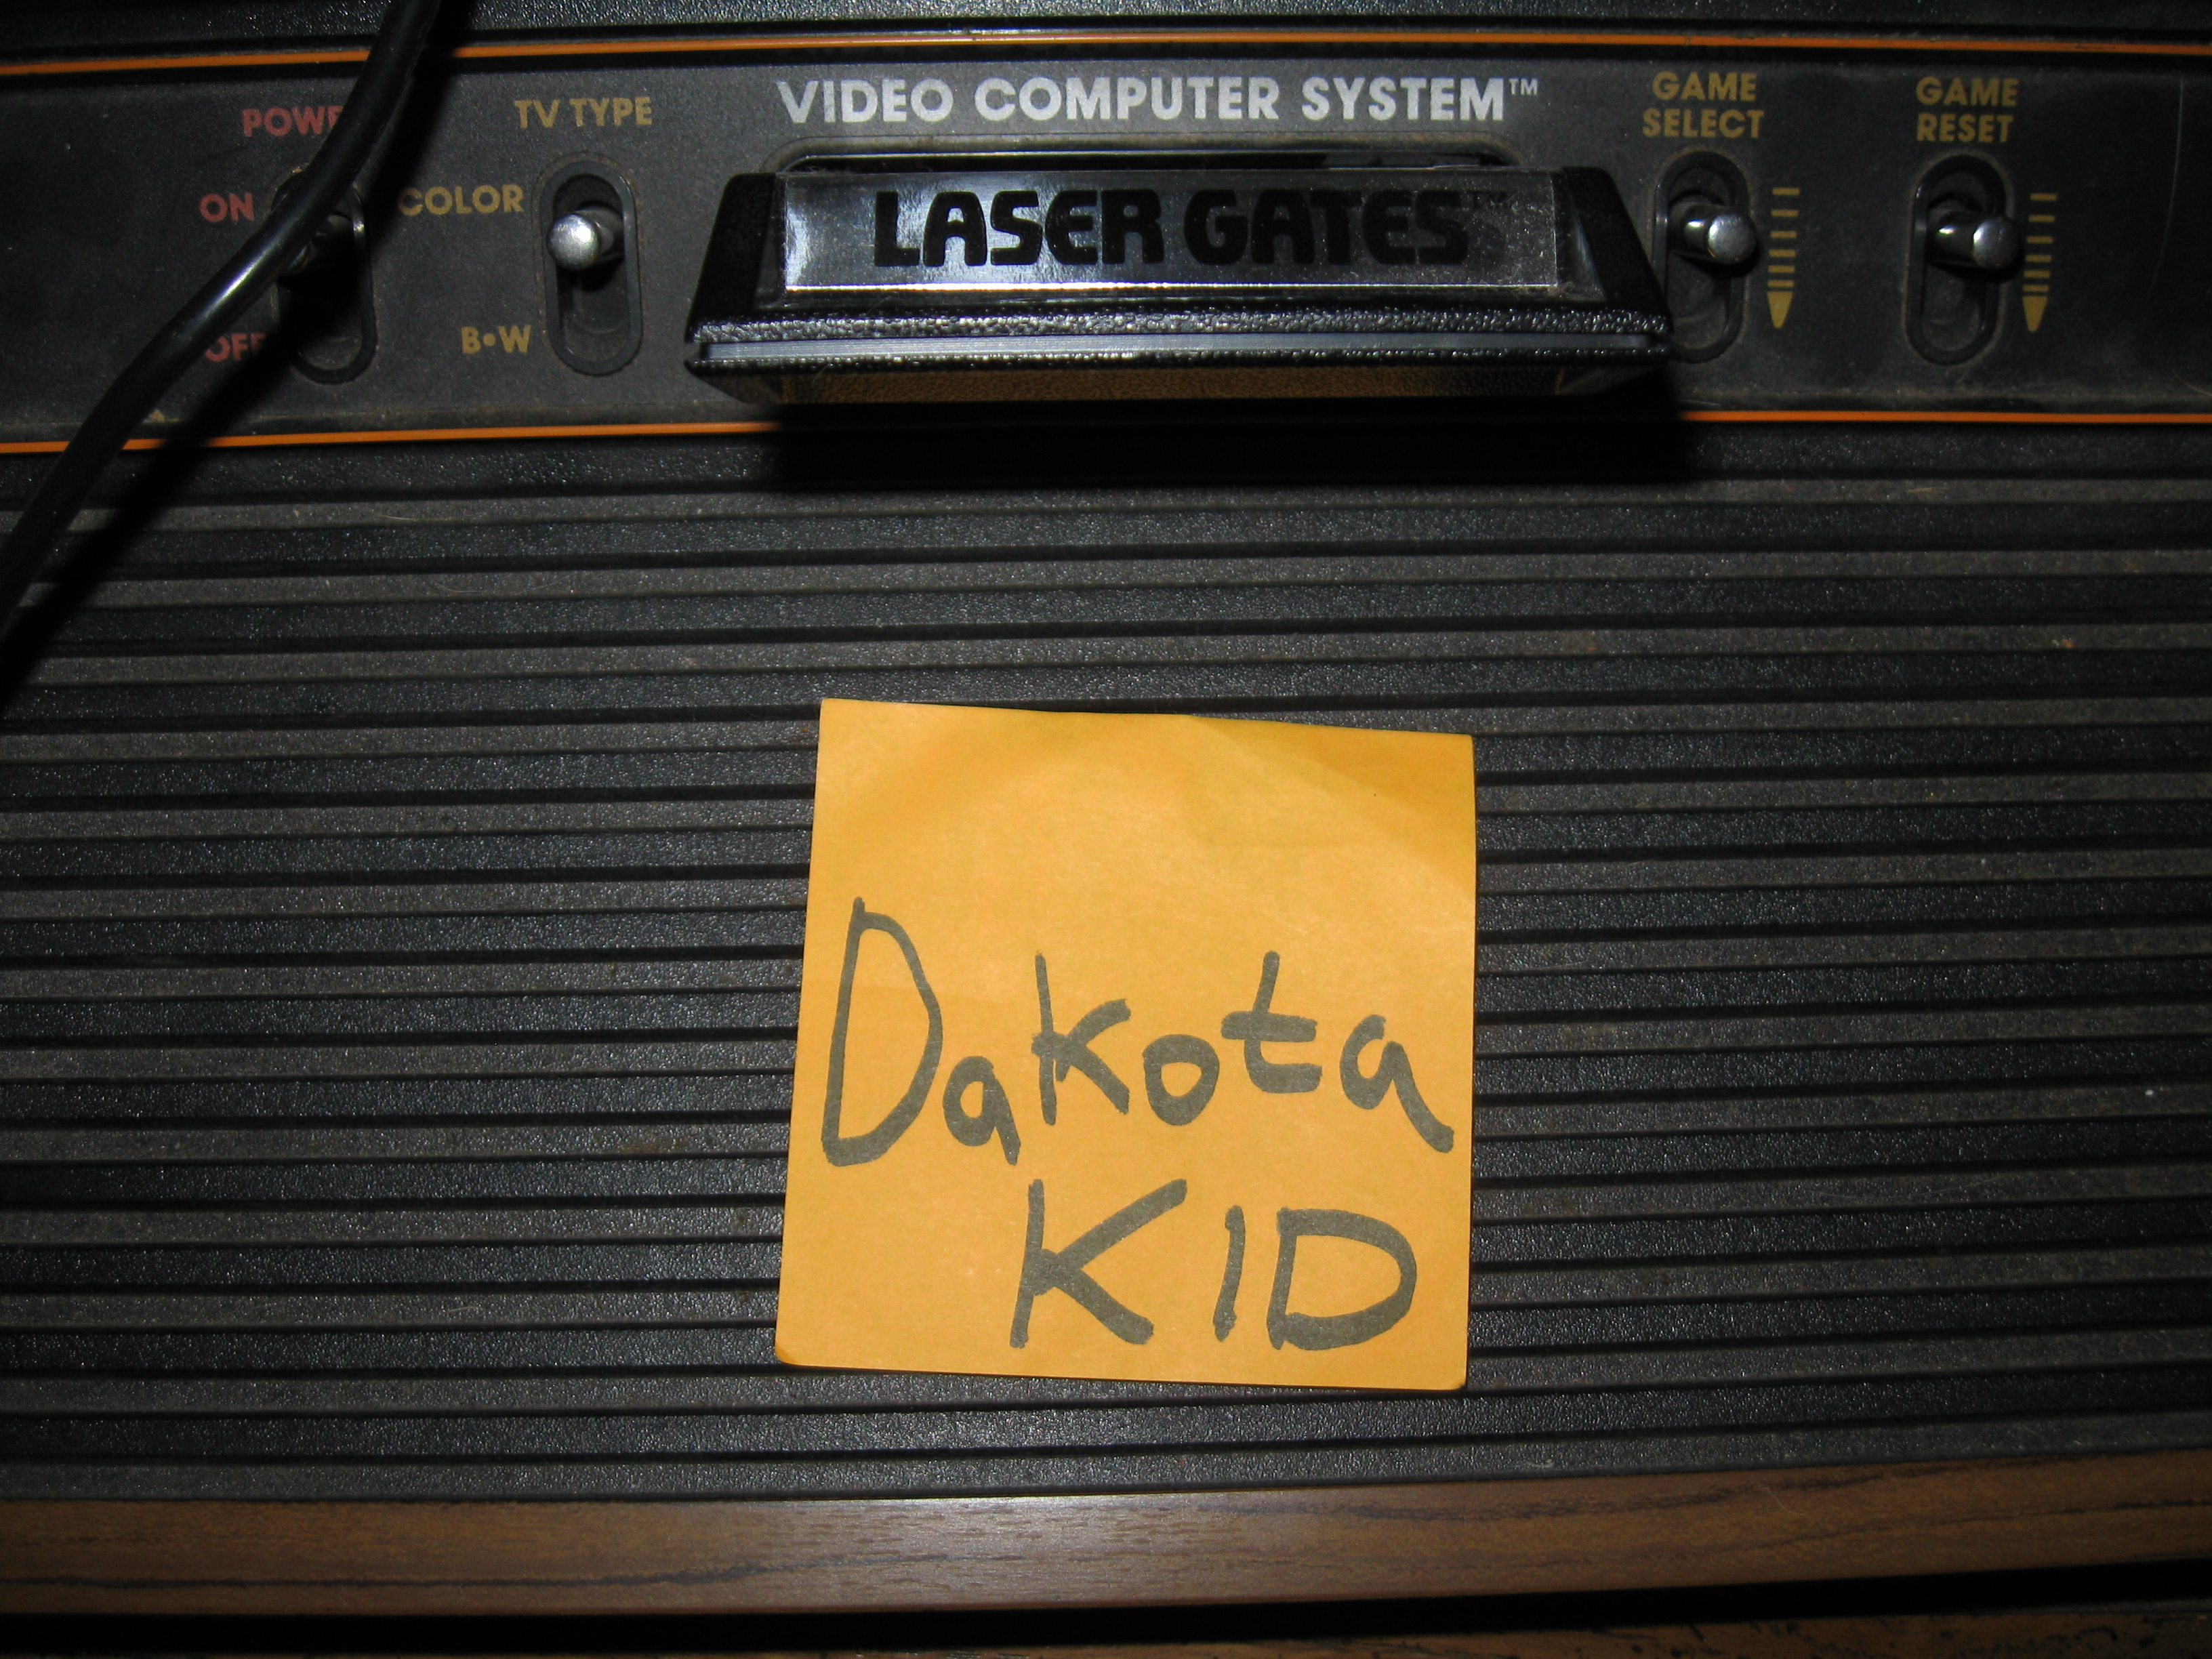 DakotaKid: Laser Gates (Atari 2600 Novice/B) 30,372 points on 2016-02-22 22:20:51